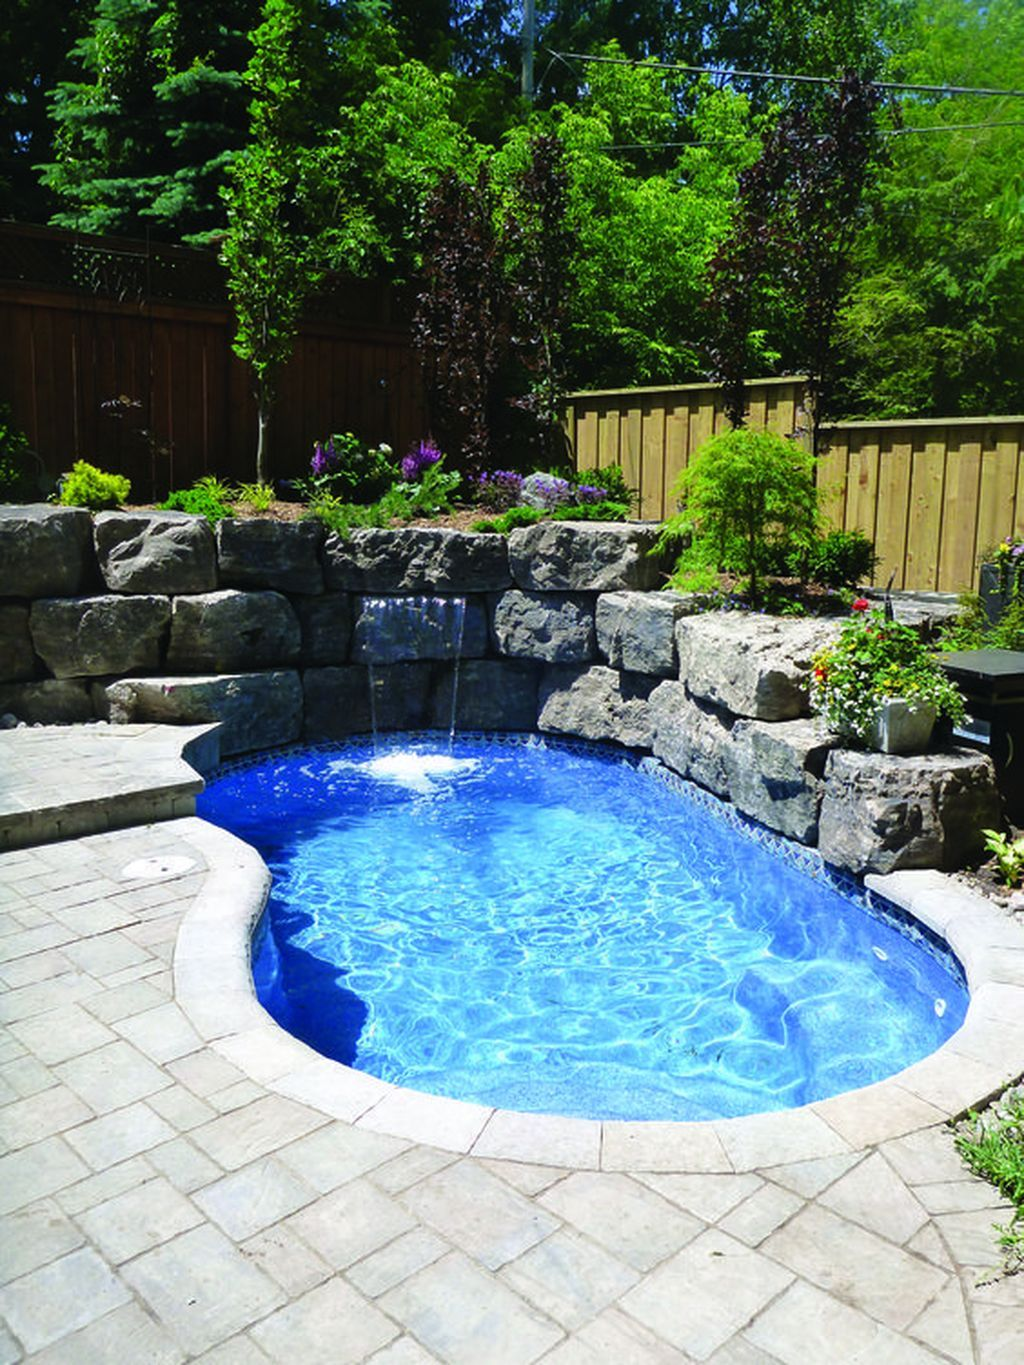 20 Top Natural Small Pool Design Ideas To Copy Asap In 2020 With